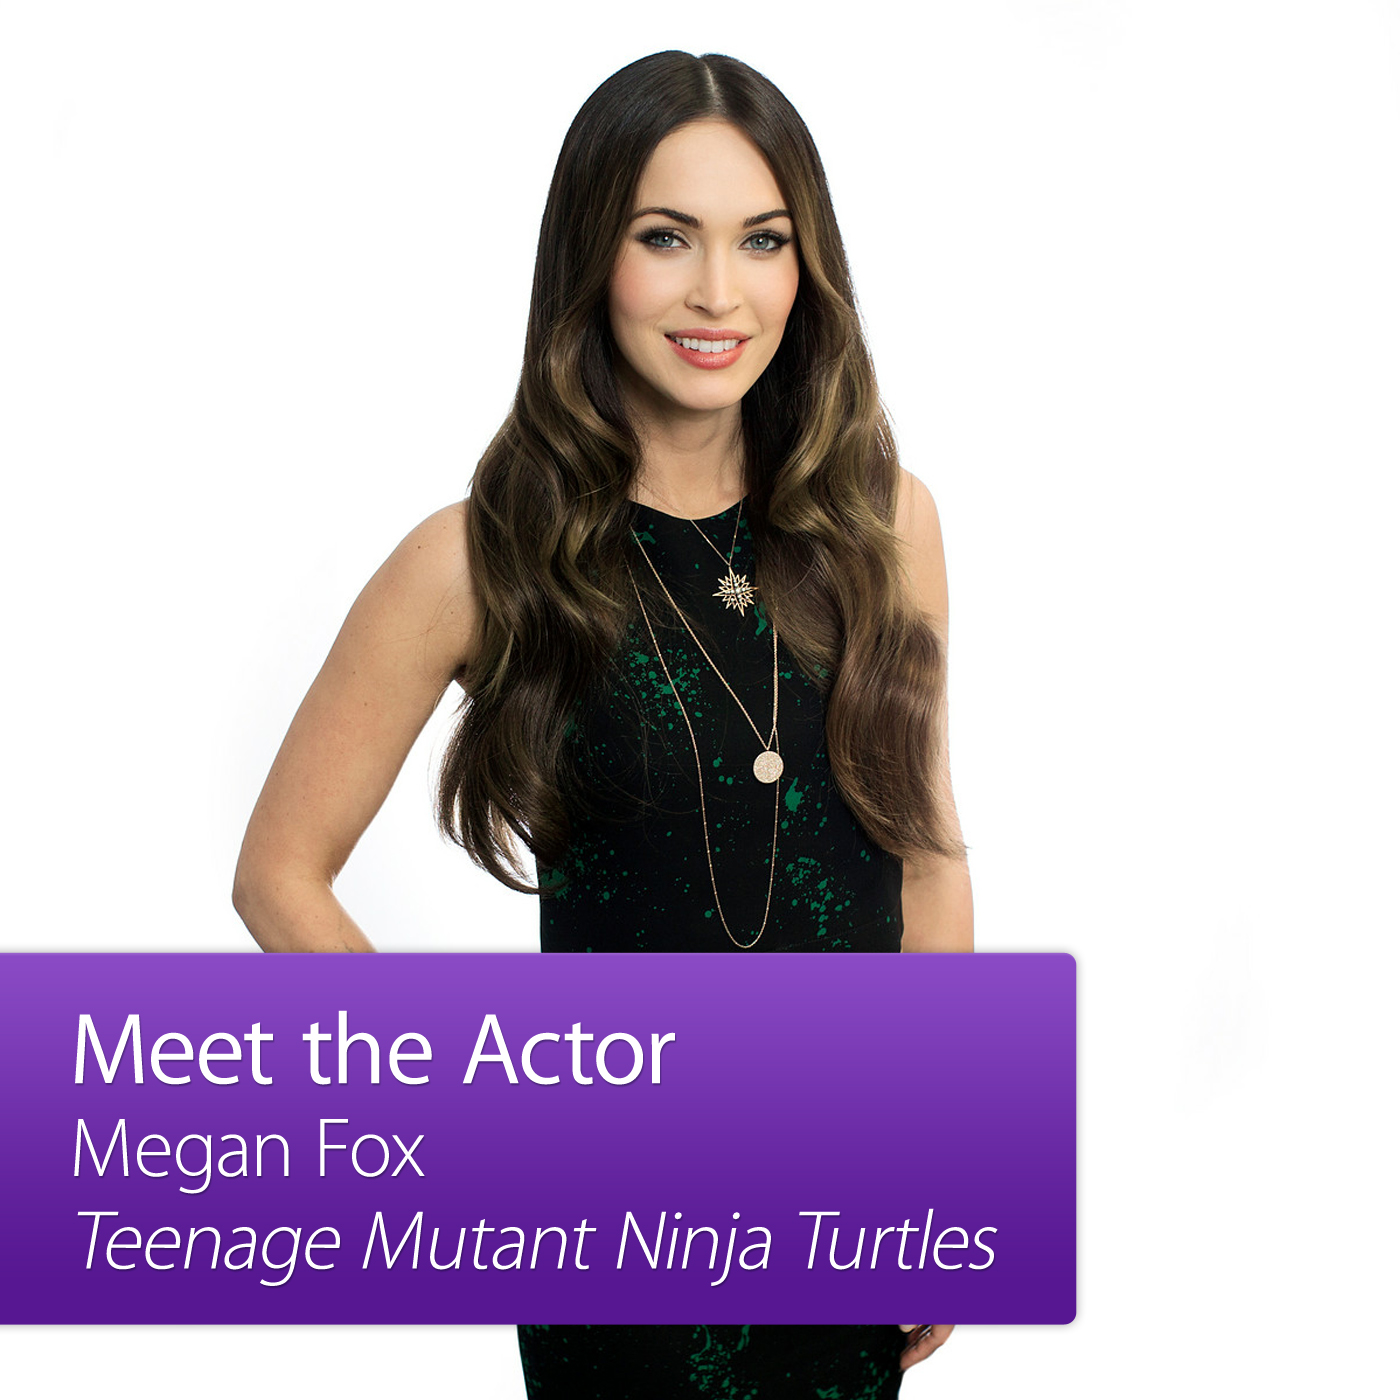 Megan Fox: Meet the Actor